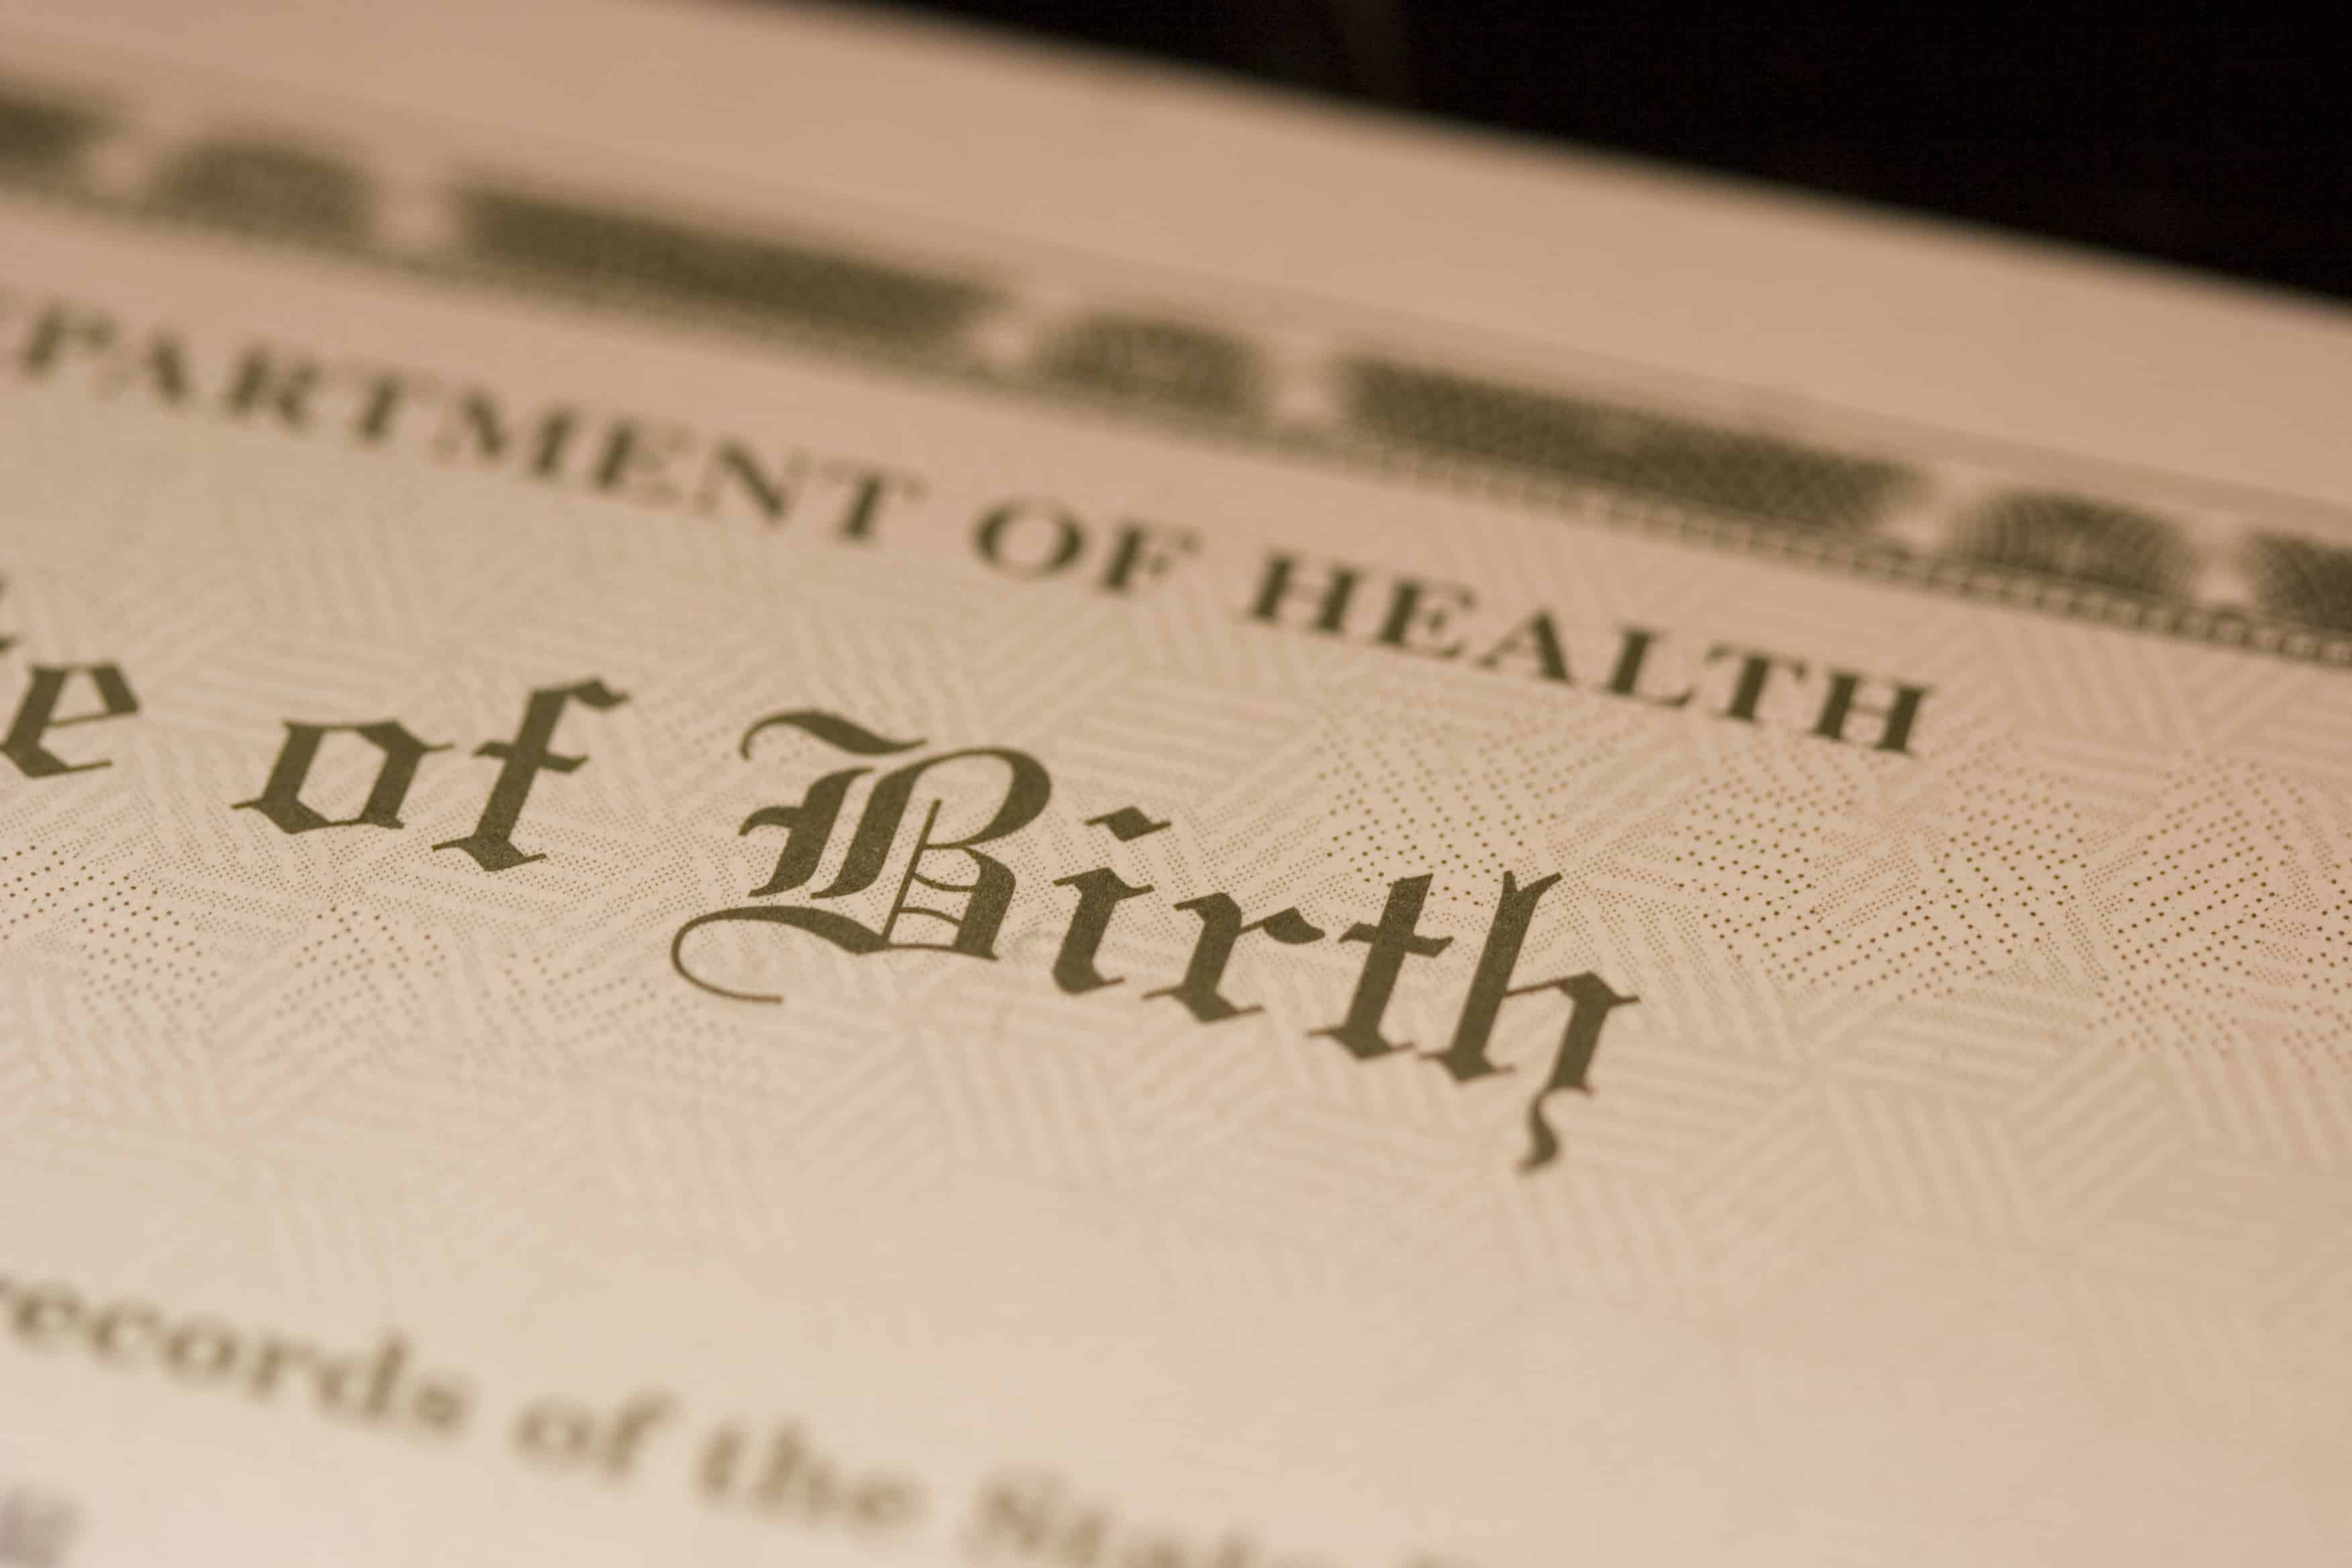 Massachusetts Registry Of Vital Records and Statistics Wonderful How to Change or Modify Your Birth Certificate Vitalchek Blog